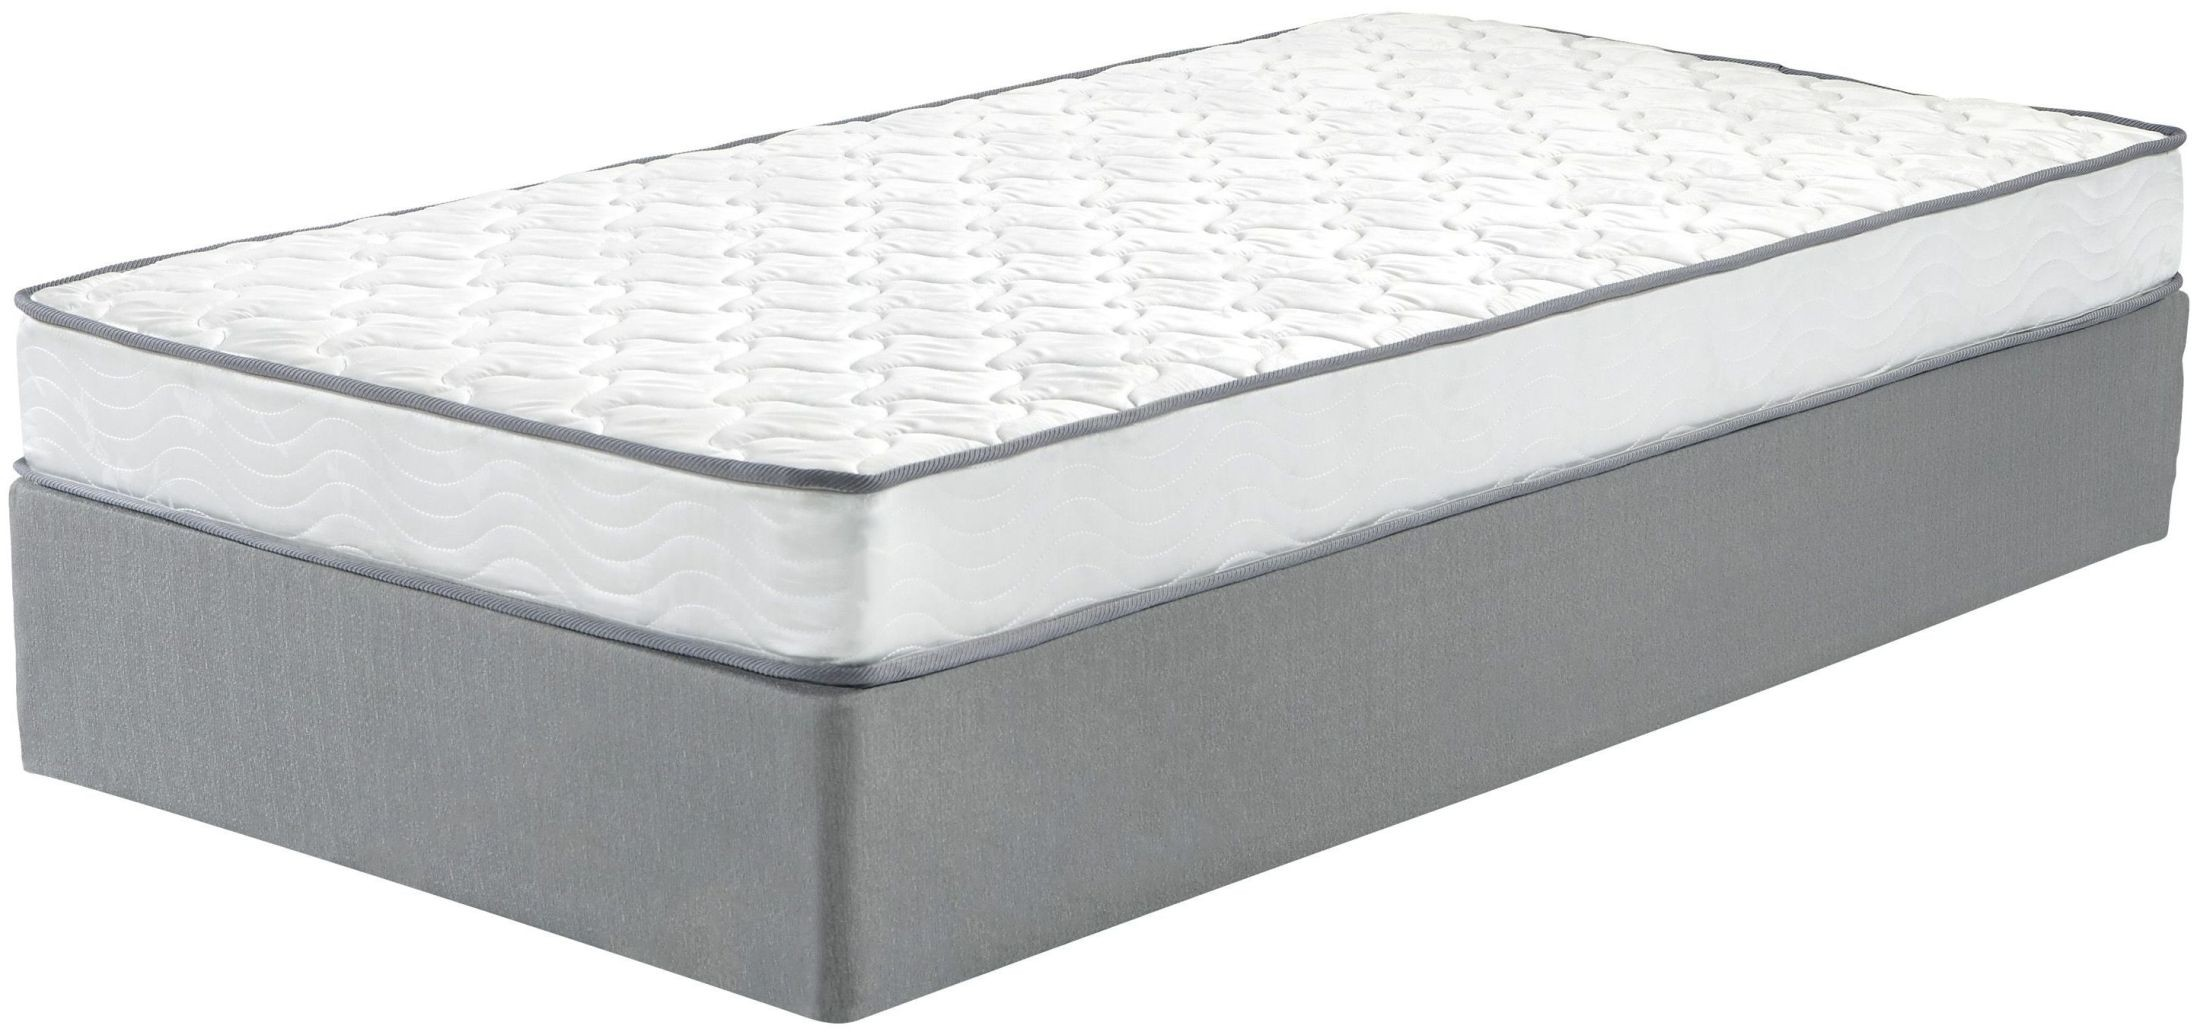 Tori Ltd White Twin Mattress With Foundation From Ashley Coleman Furniture